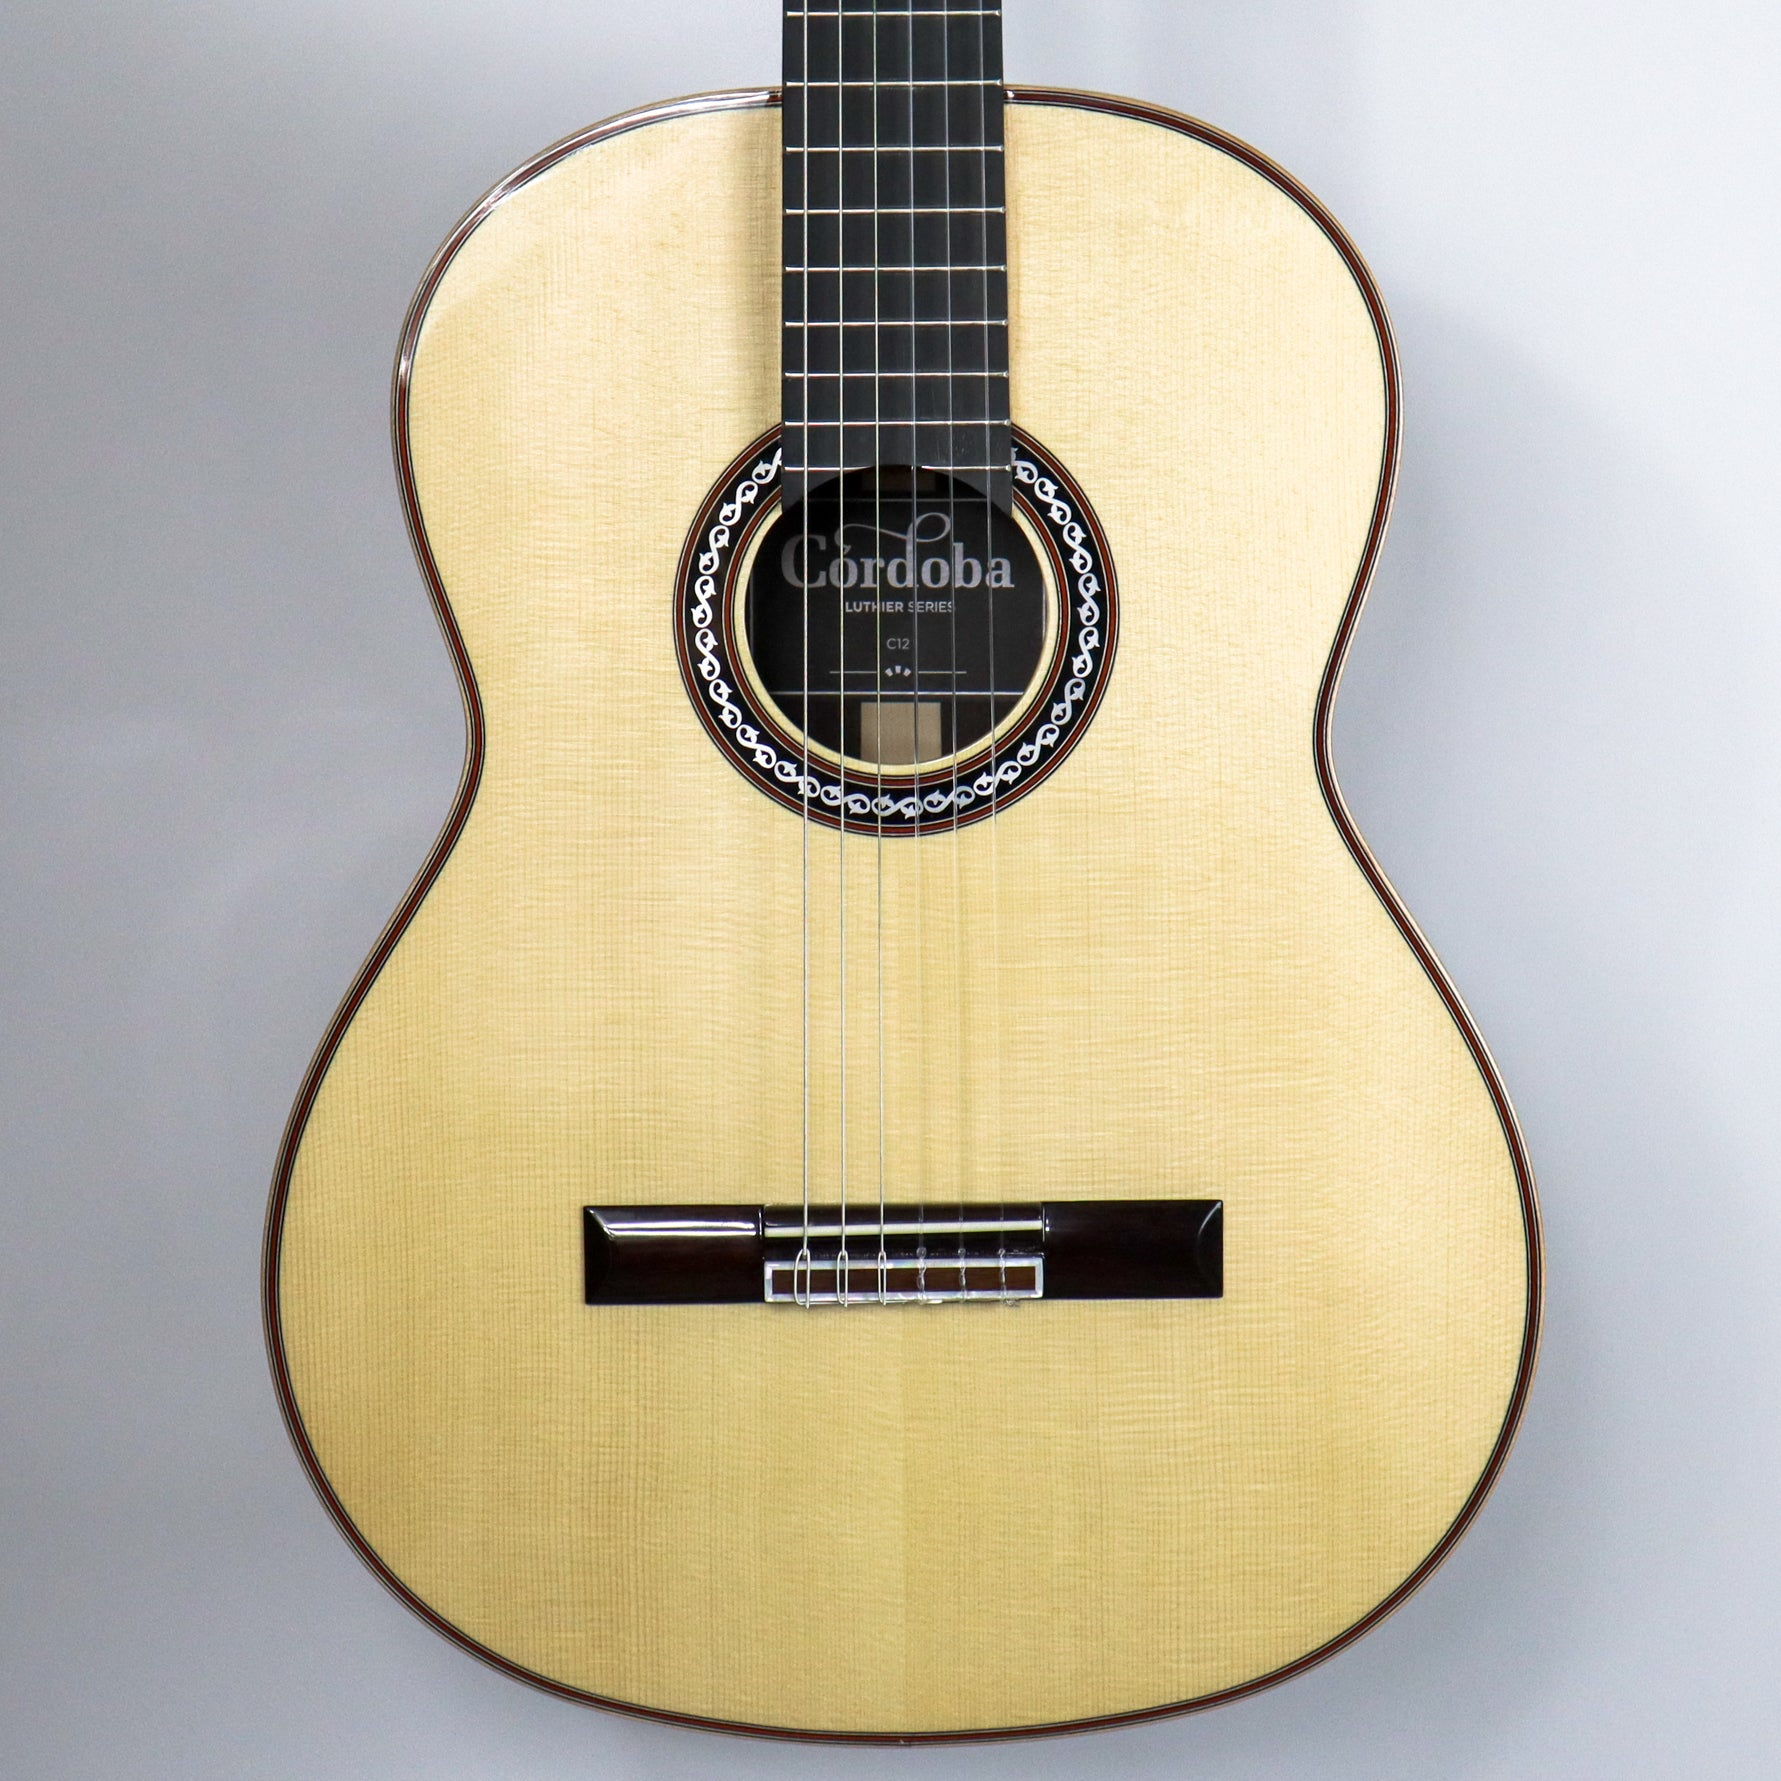 Cordoba C12 Solid European Spruce Top